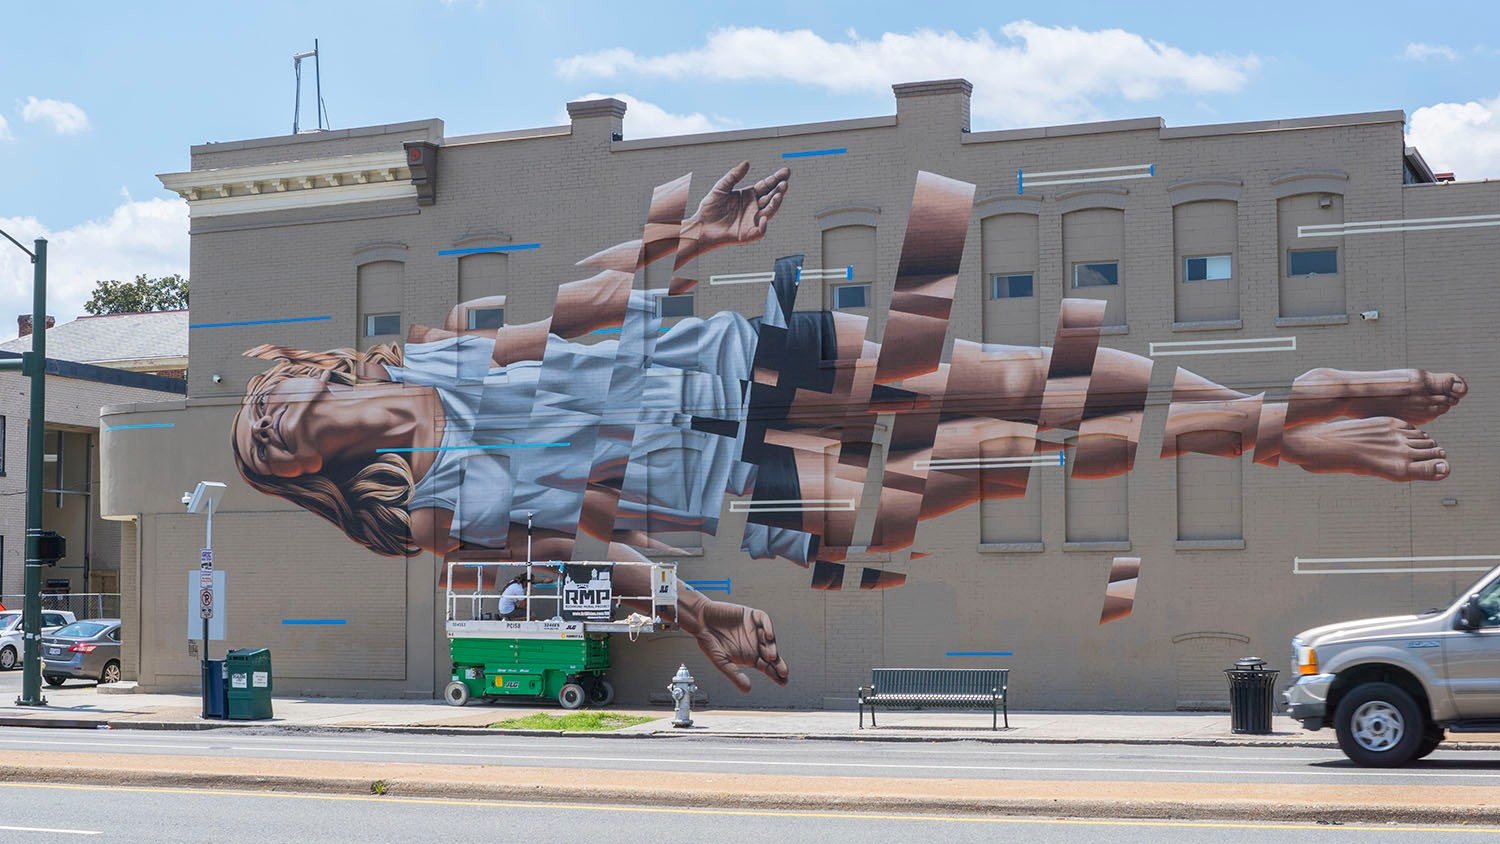 segmented street art of a woman in richmond by james bullough